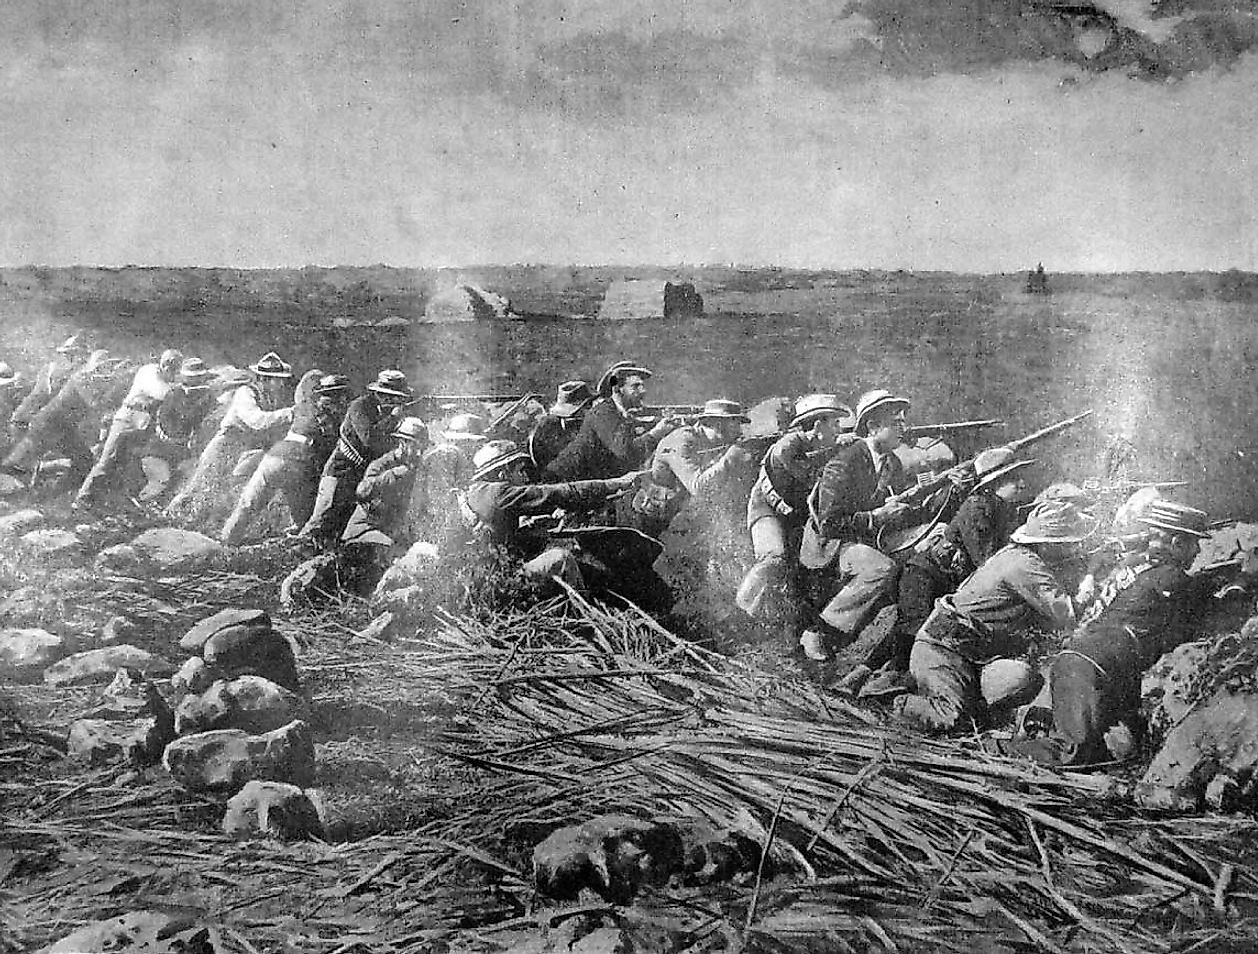 Boer soldiers fighting from the trenches during the battle in Mafeking.